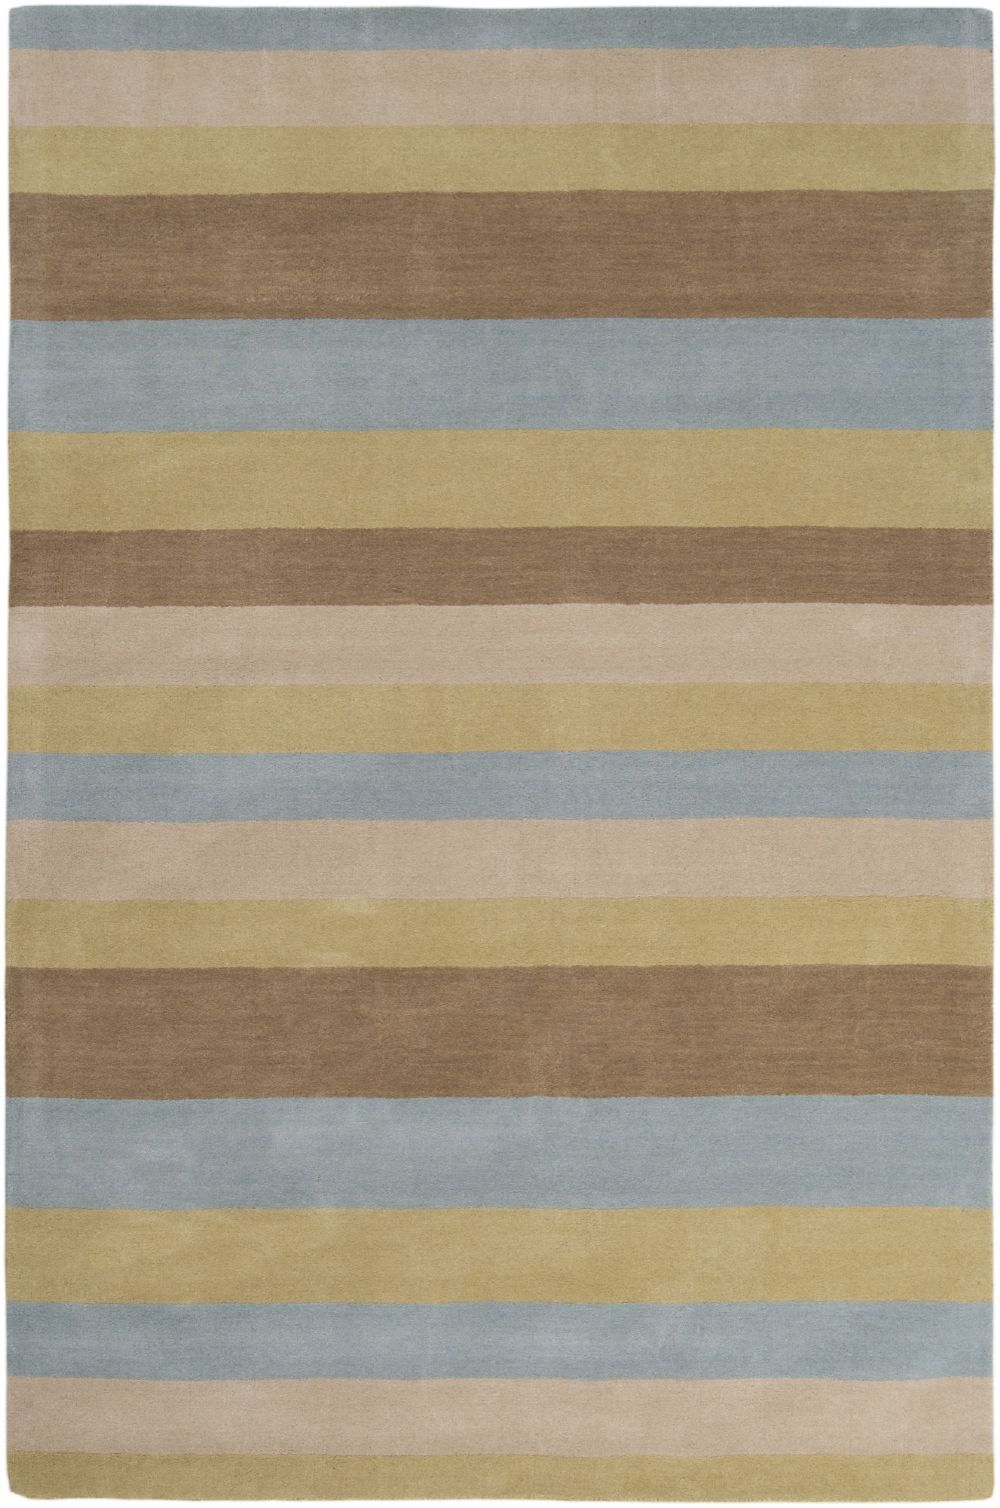 surya loft solid/striped area rug collection